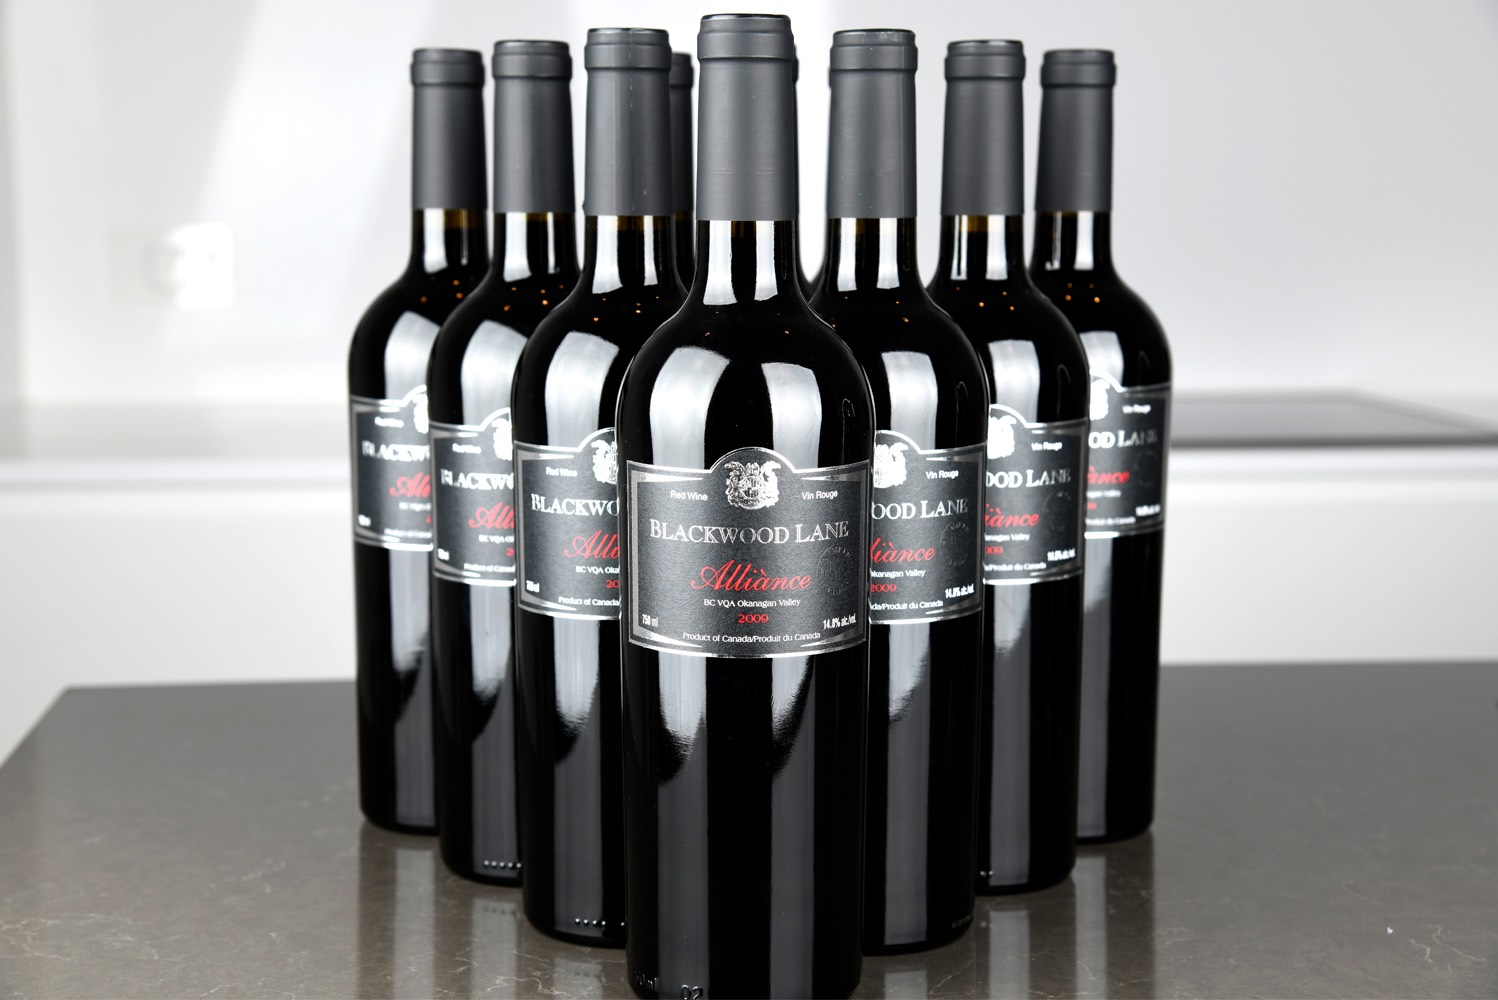 alliance wine from Blackwood Lane Winery